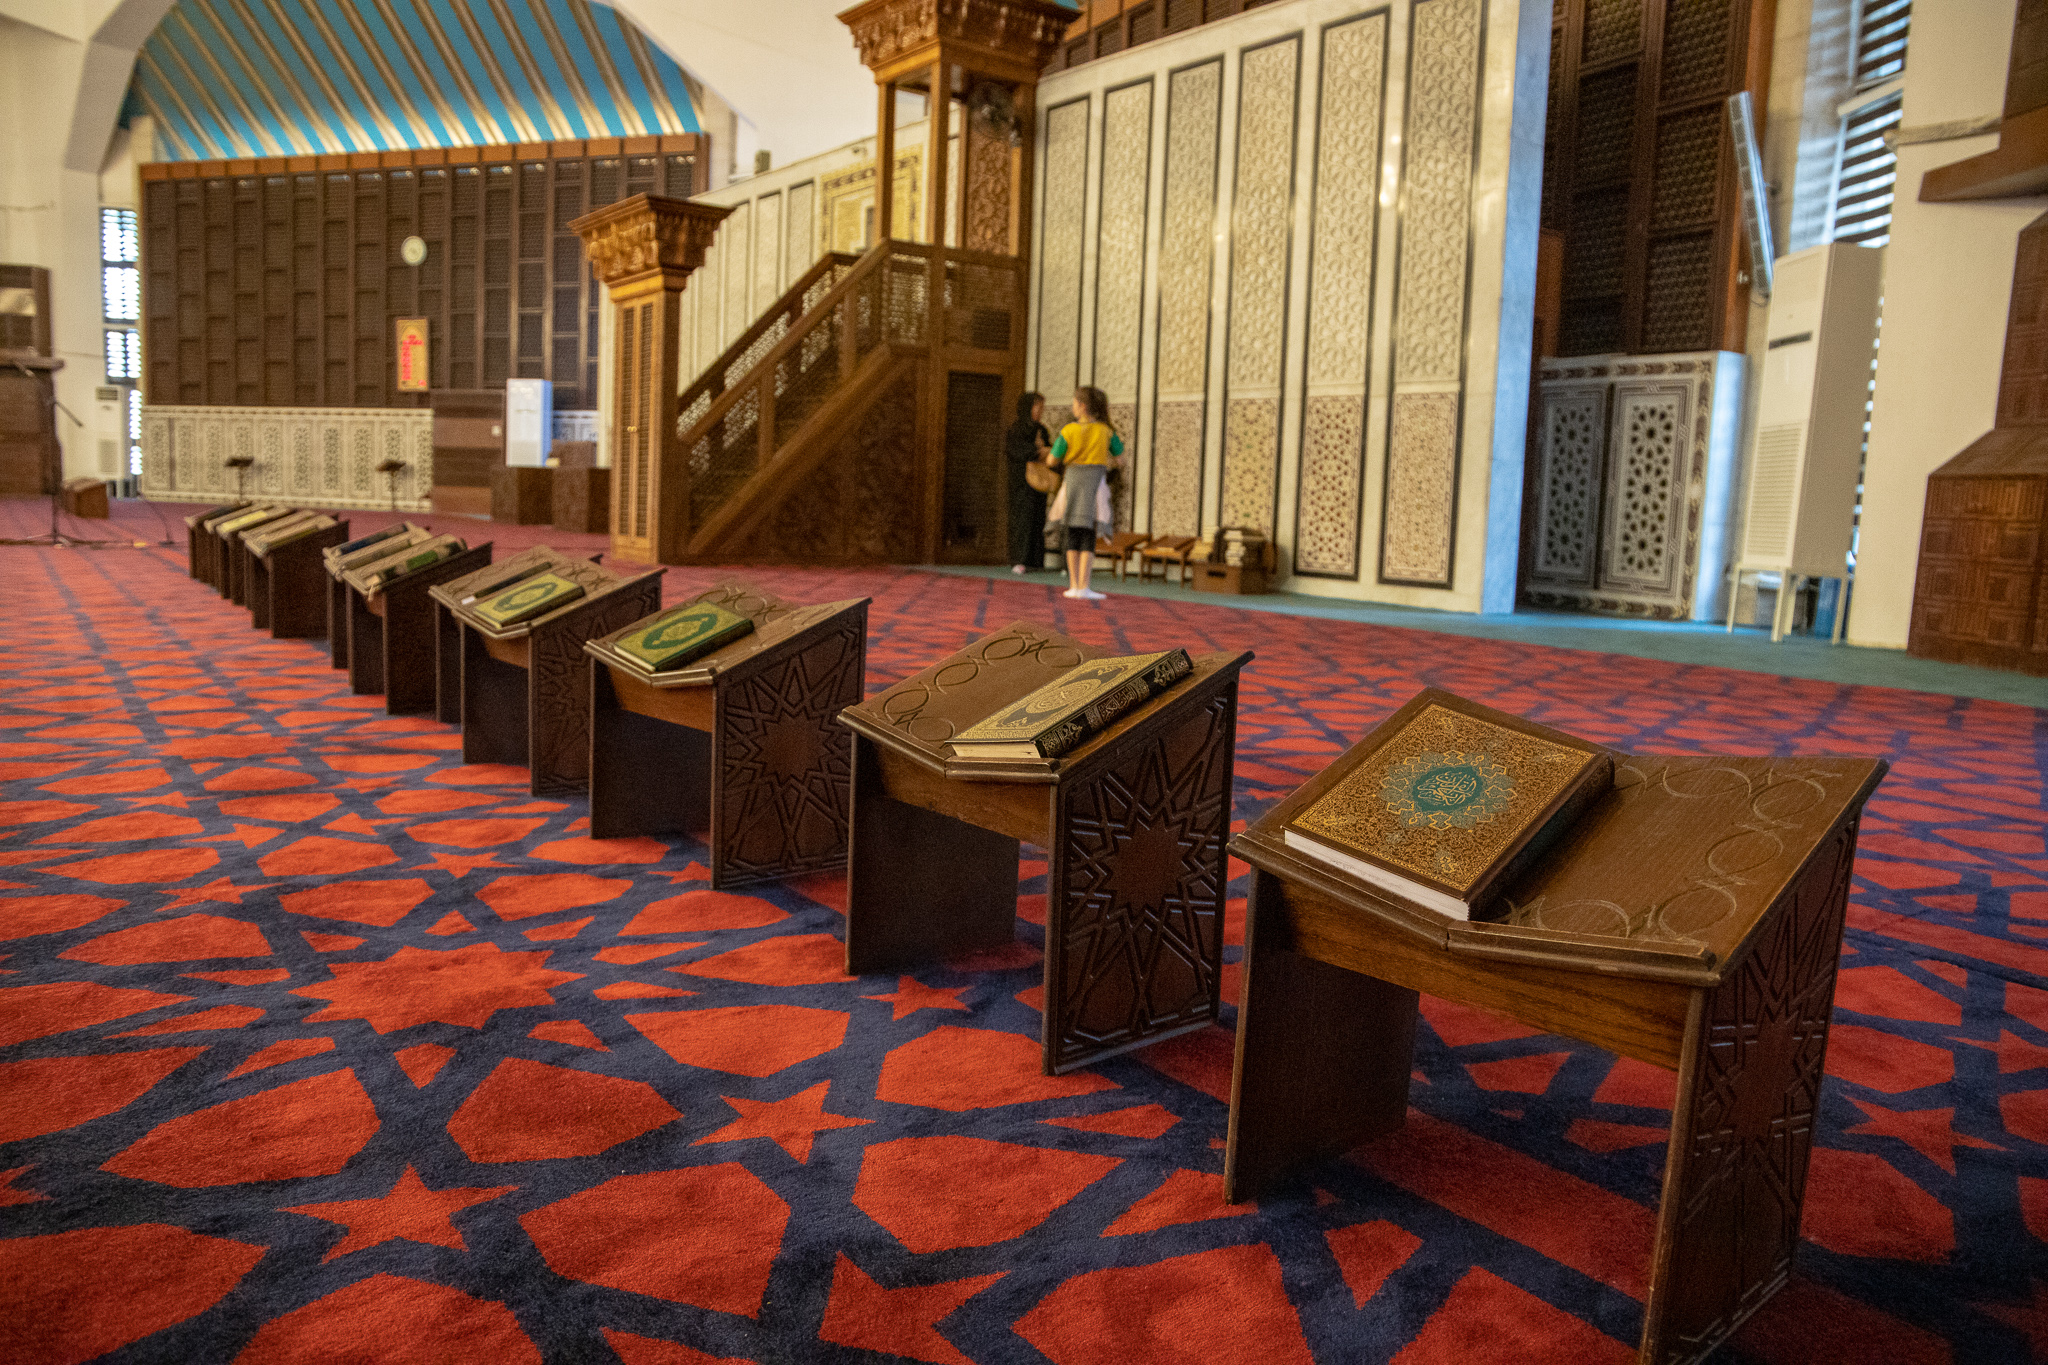 Prayer books lined up inside the mosque